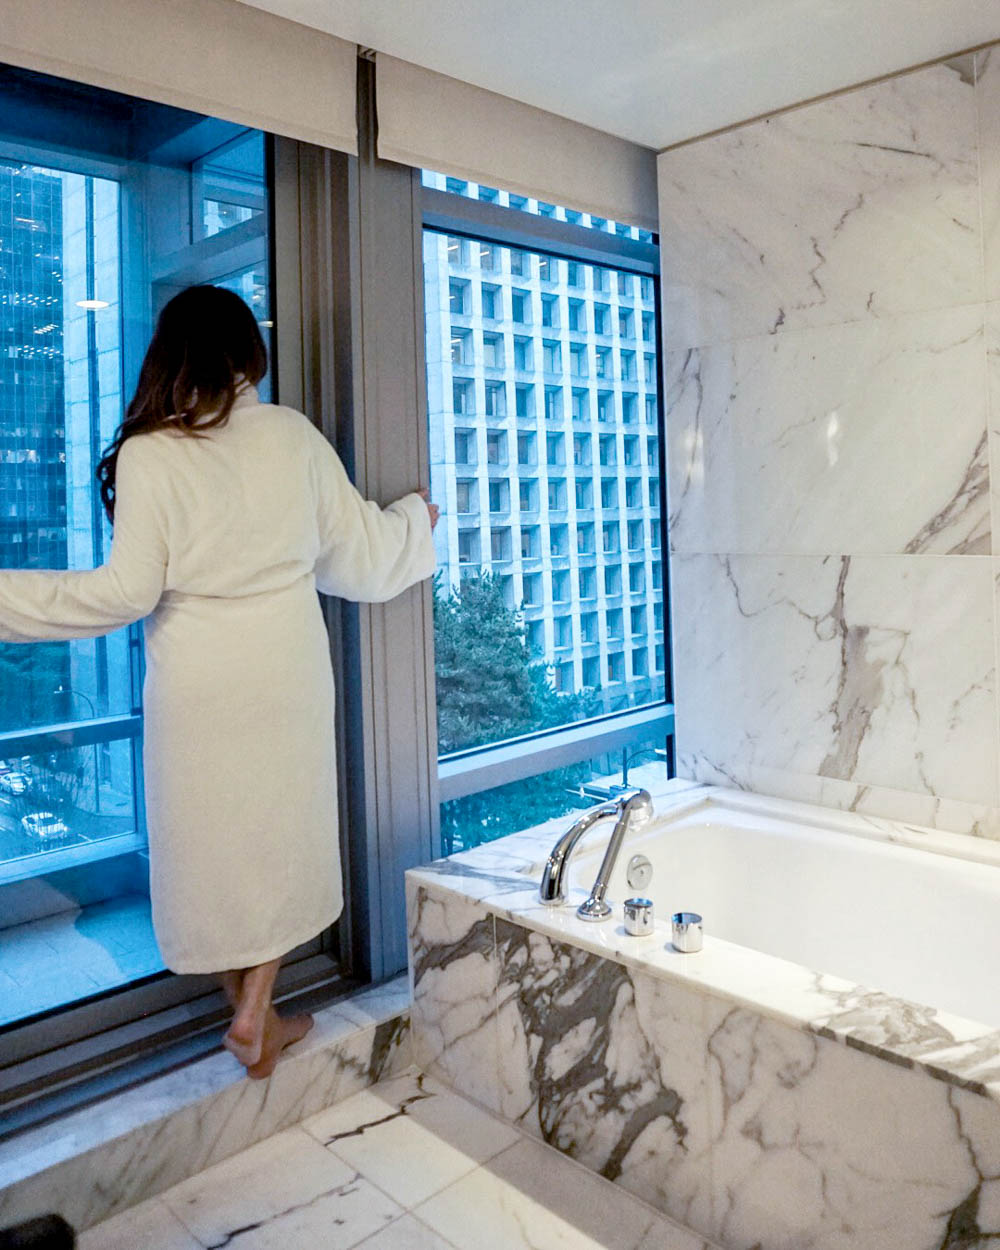 Vancouver Travel Tips_Vancouver Travel Ideas-24.jpg